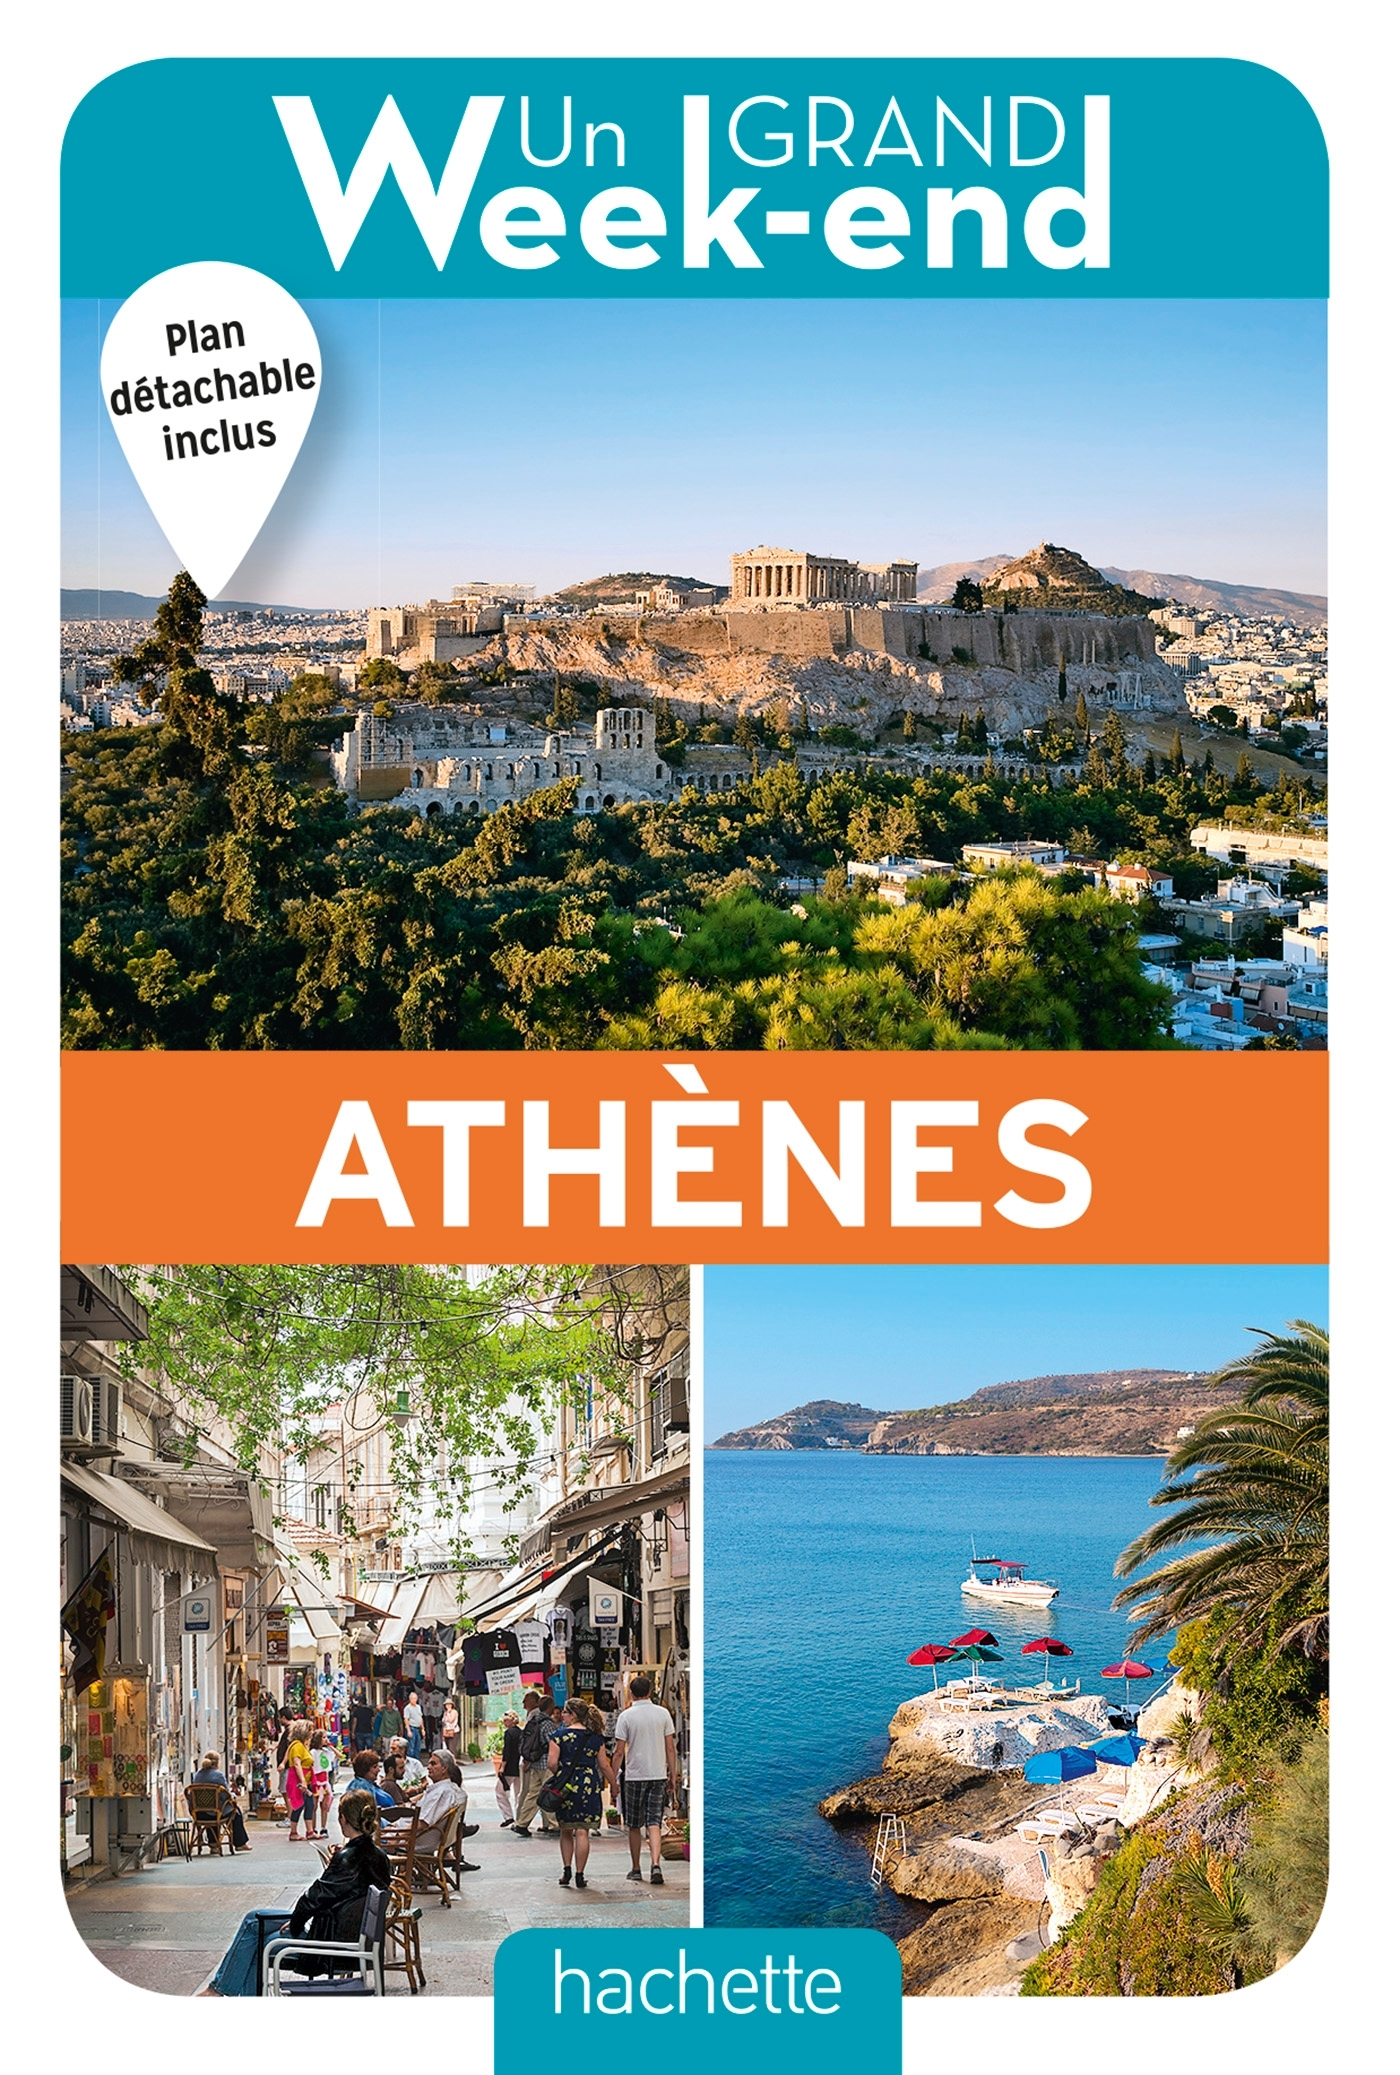 UN GRAND WEEK-END A ATHENES. LE GUIDE